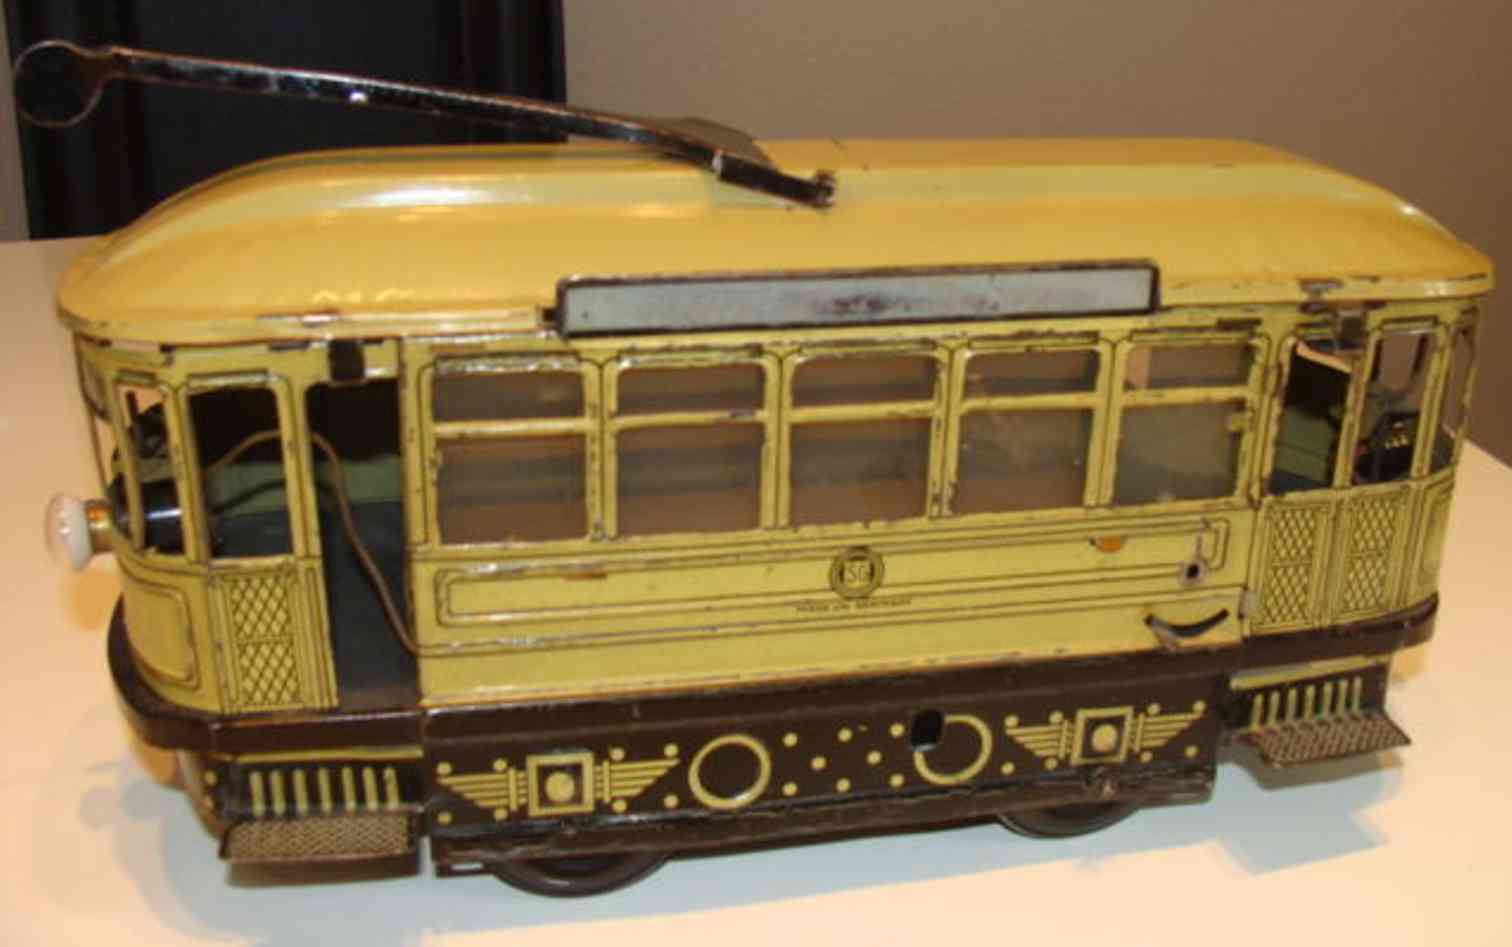 guenthermann 74 tin toy tram trolley in beige and brown